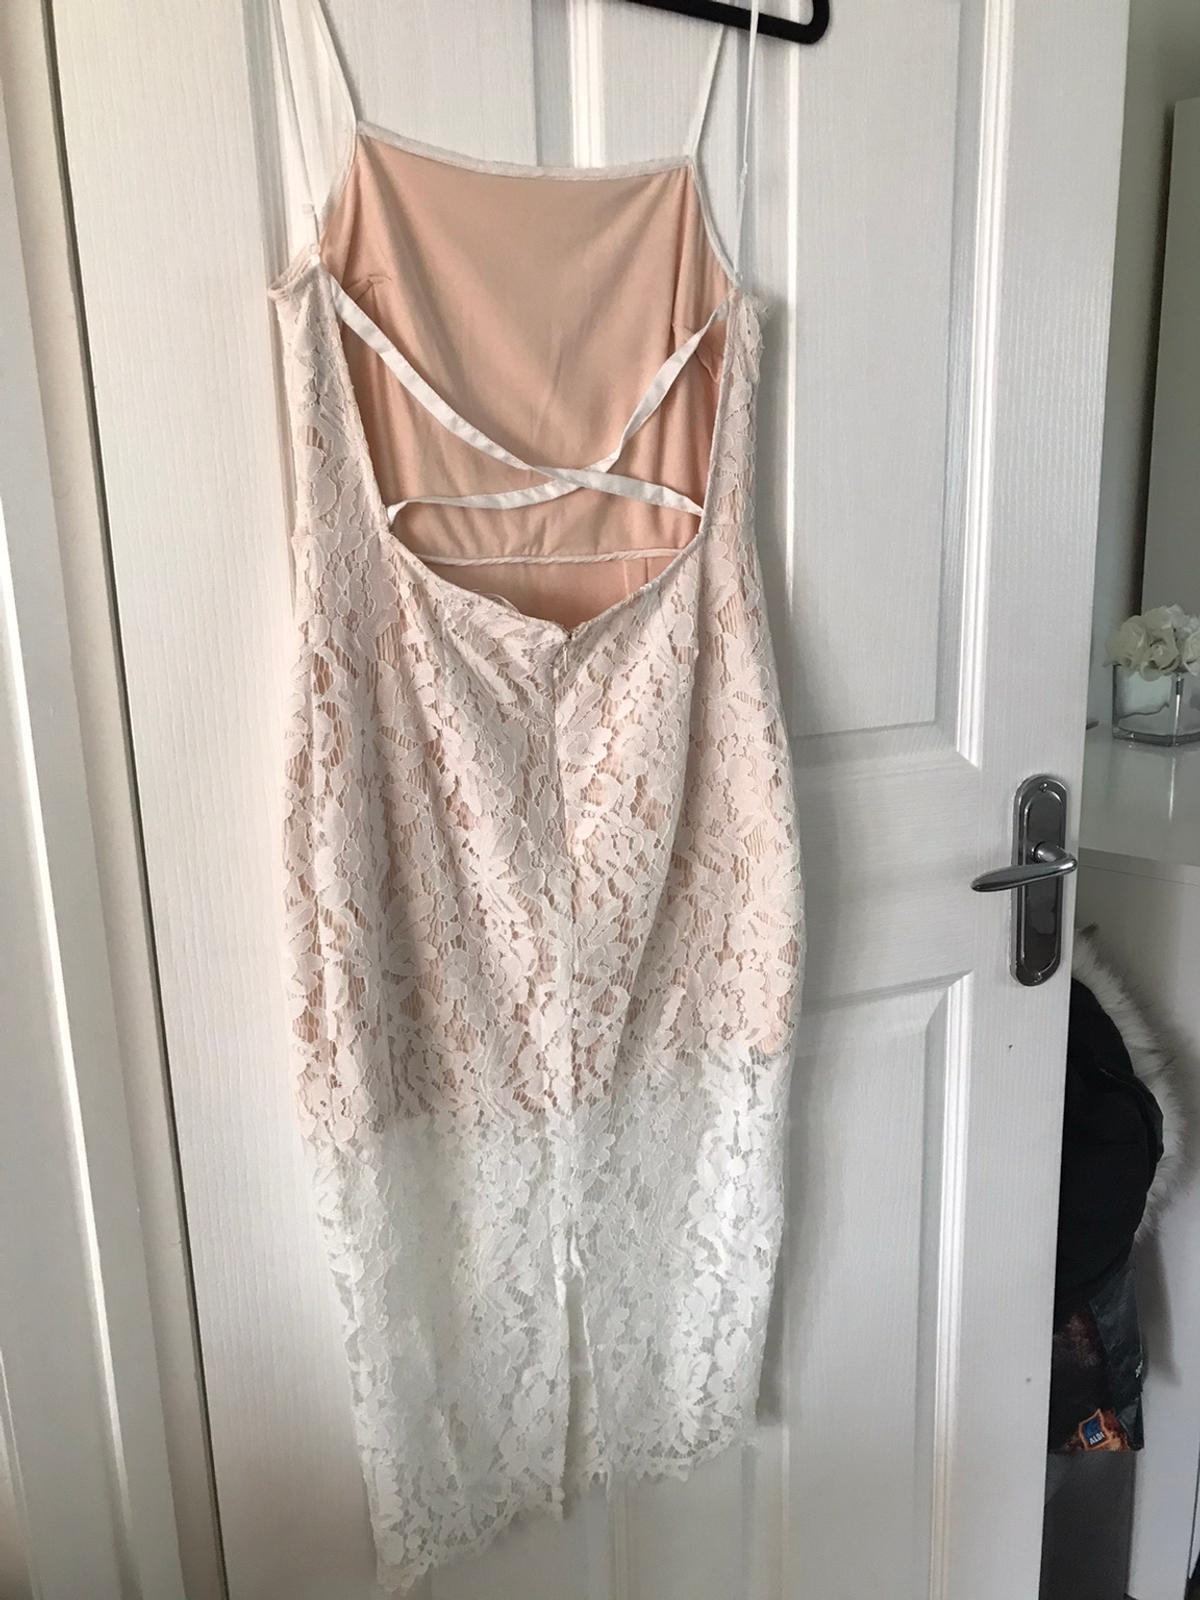 Really good condition apart from a small tear at the bottom of the dress as shown in pictures. Brought from misguided and only worn once. Size 10. Item can be collected within Oxfordshire or delivered x